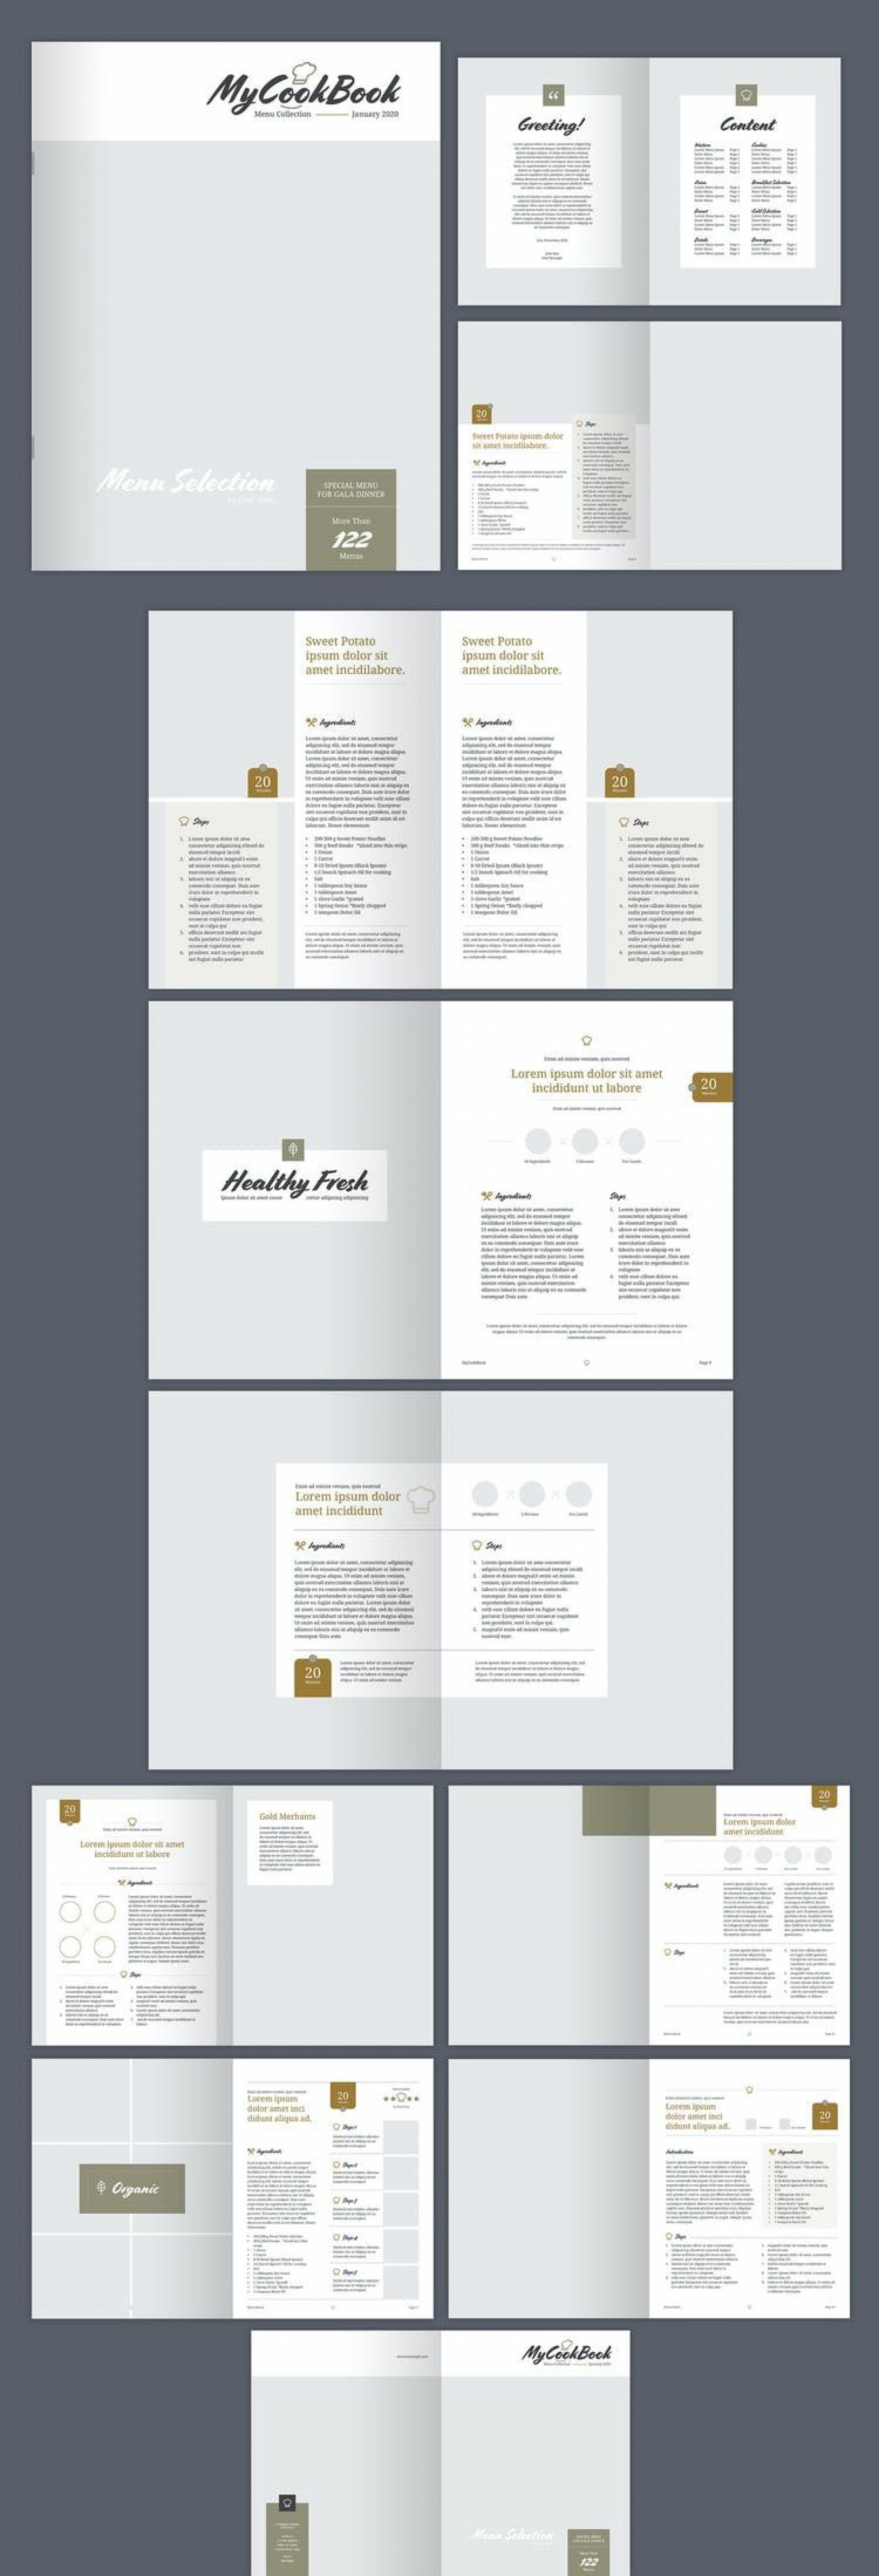 005 Unusual Indesign Book Layout Template Highest Quality  Free Download1920